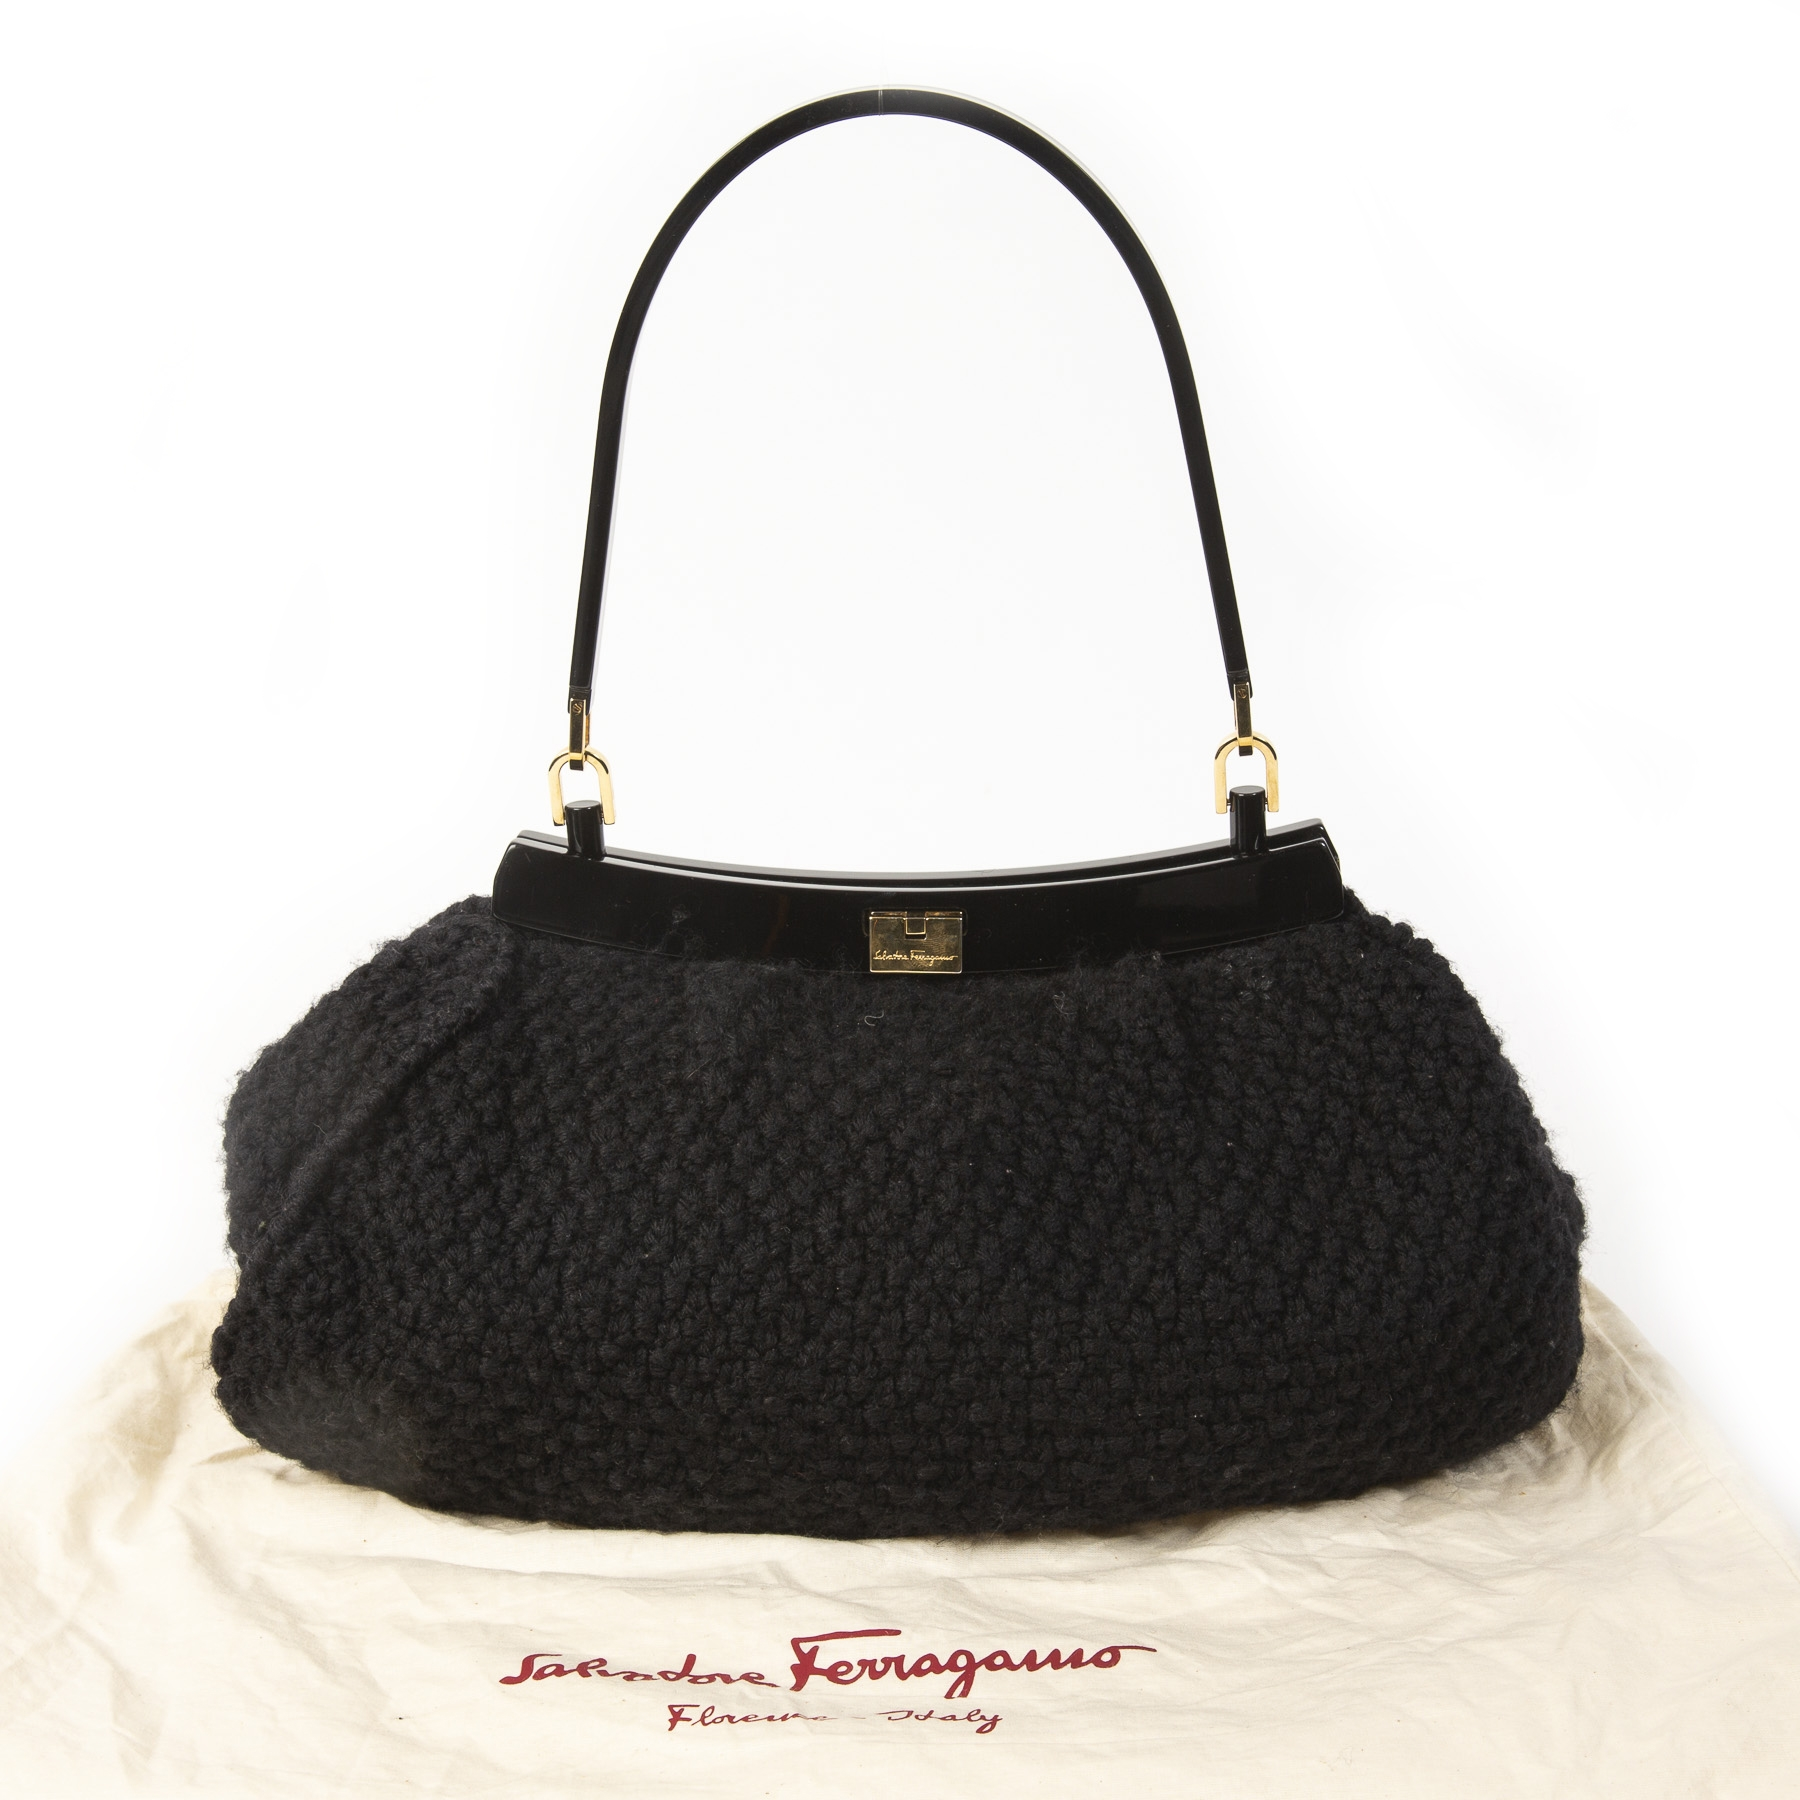 Salvatore Ferragamo Black Wool Knitted Shoulder Bag.  Buy authentic Salvatore Ferragamo Bag at the right price at LabelLOV vintage webshop. Shop safe and secure online. Koop authentieke Salvatore Ferragamo tas aan de juiste prijs bij LabelLOV .